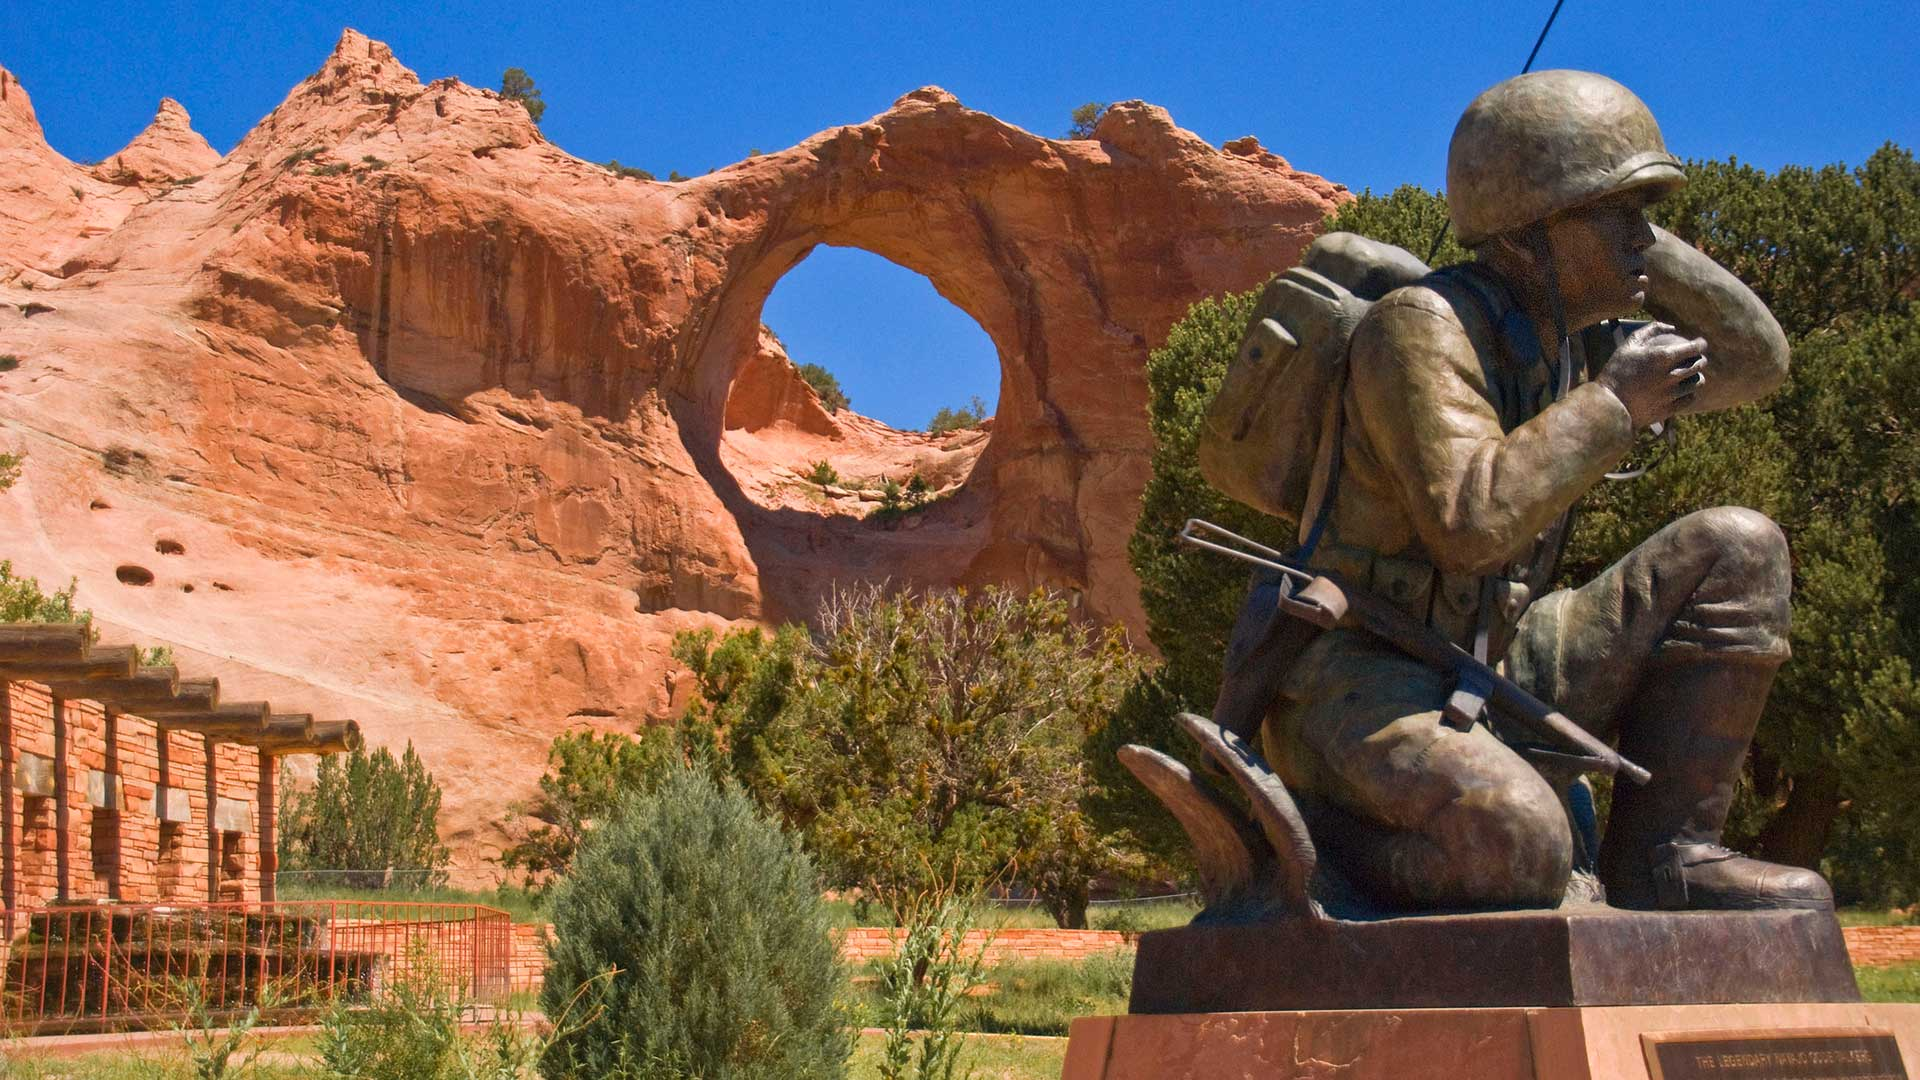 Navajo Code Talker Memorial at Window Rock, Arizona.